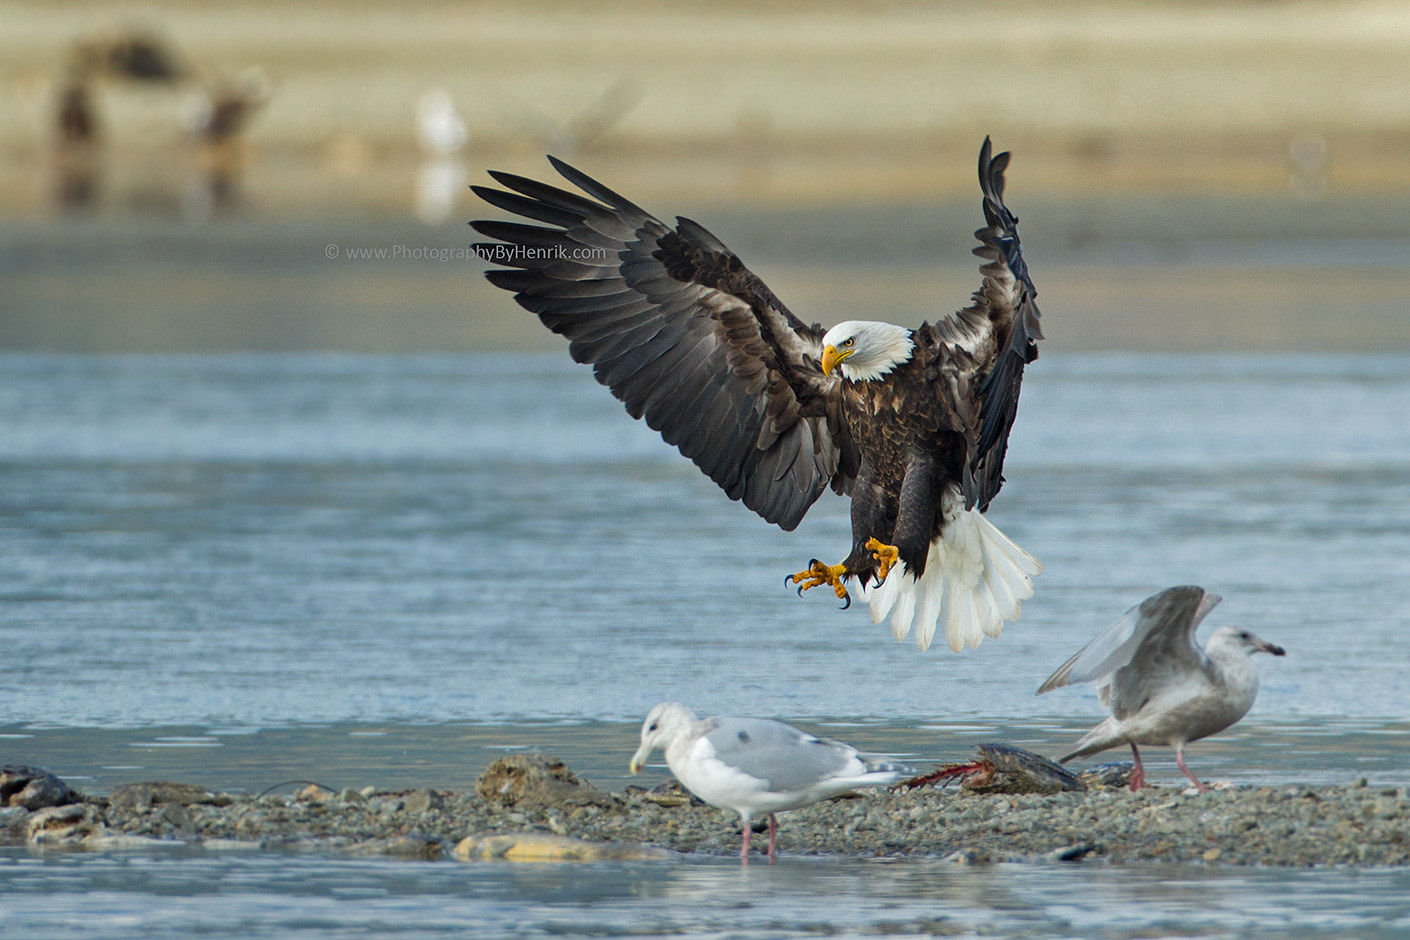 Photograph Taking Ownership by Henrik Nilsson on 500px